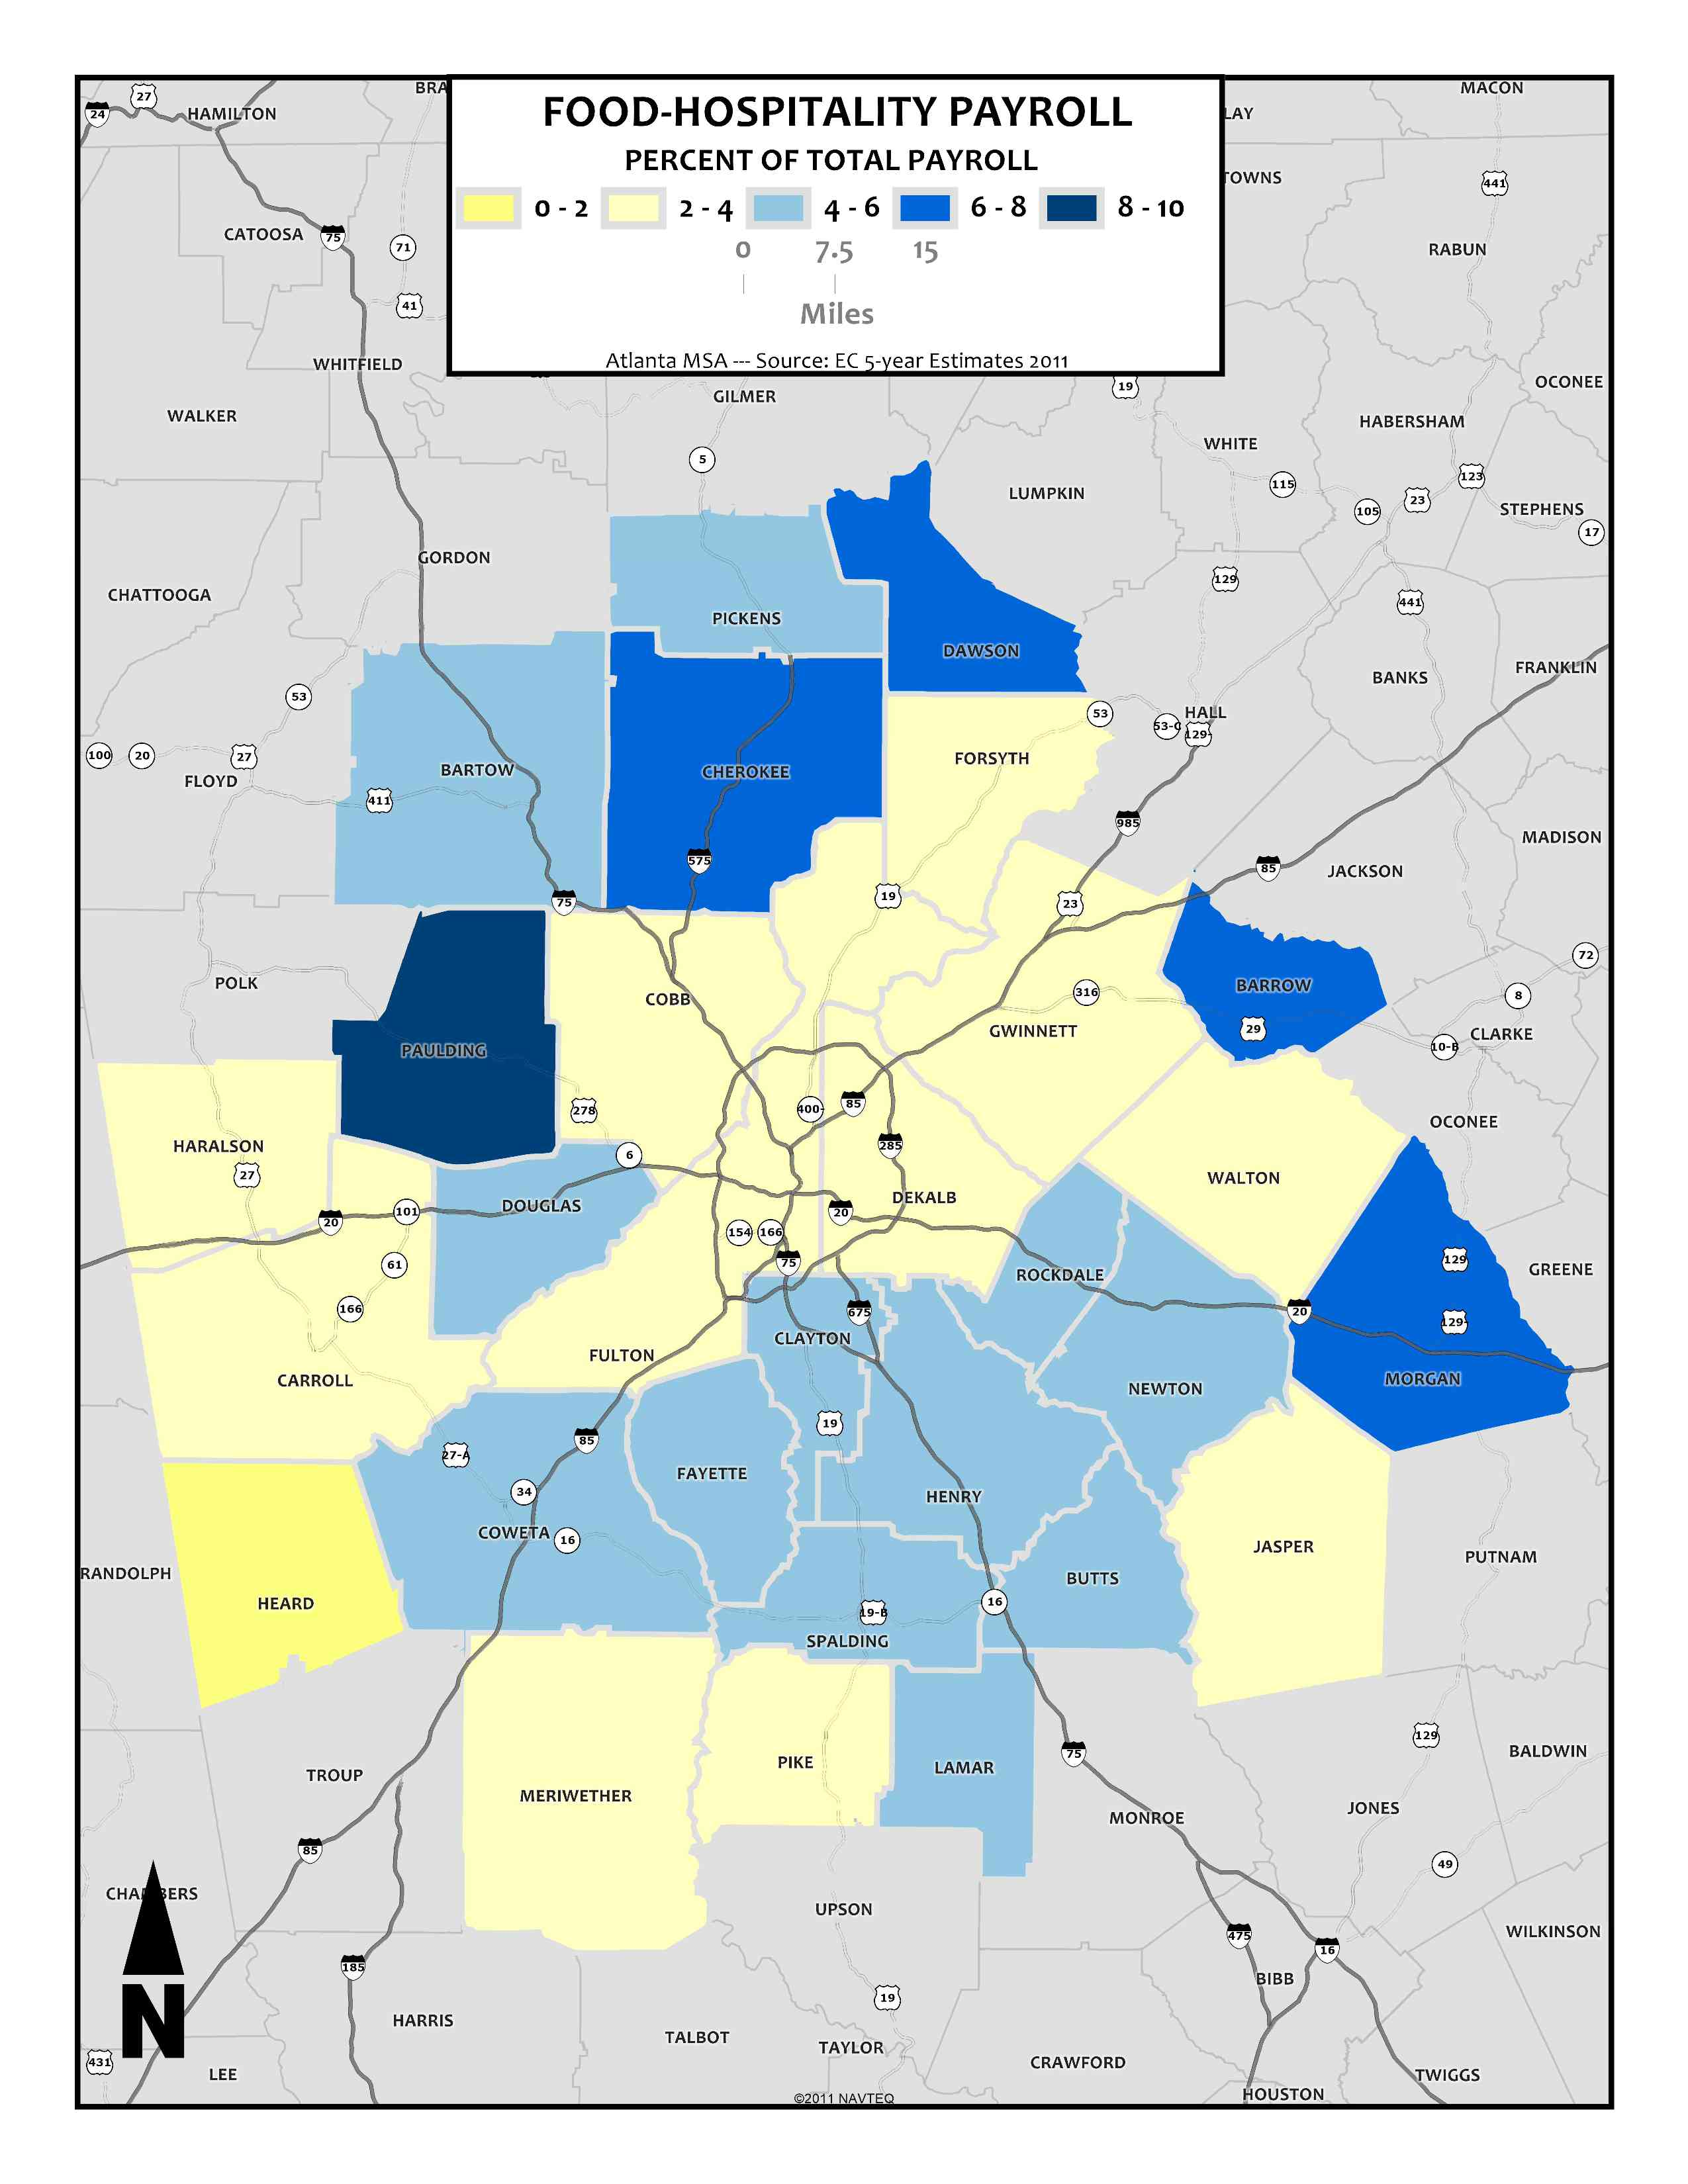 Food & Hospitality Payroll (Industry Share), 2011 – metro counties